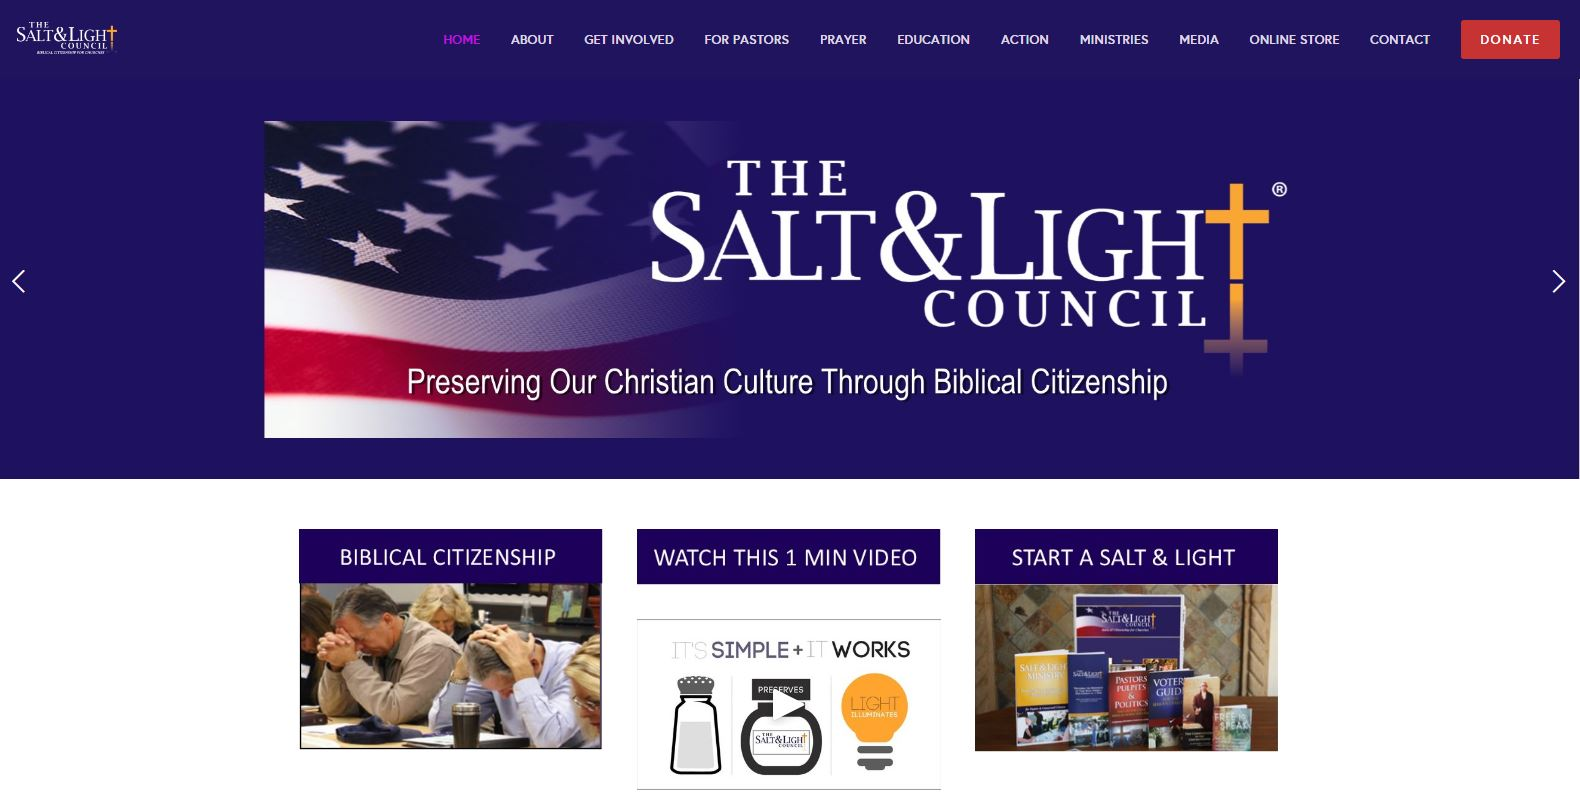 The Salt and Light Council